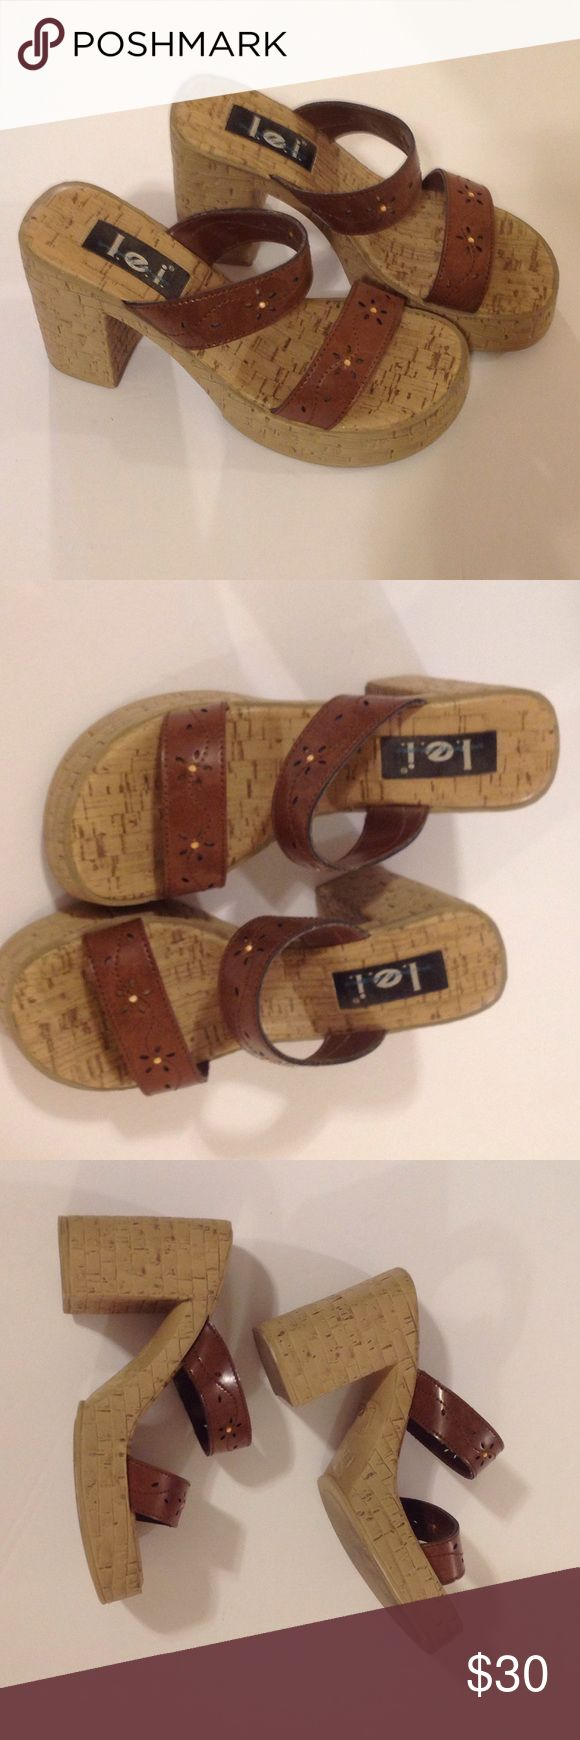 l.e.i. Boho Hippie Faux Cork-like Fat Heels Scrappy man made 4 inch heel with a hippie flair. l.e.i Shoes Mules & Clogs